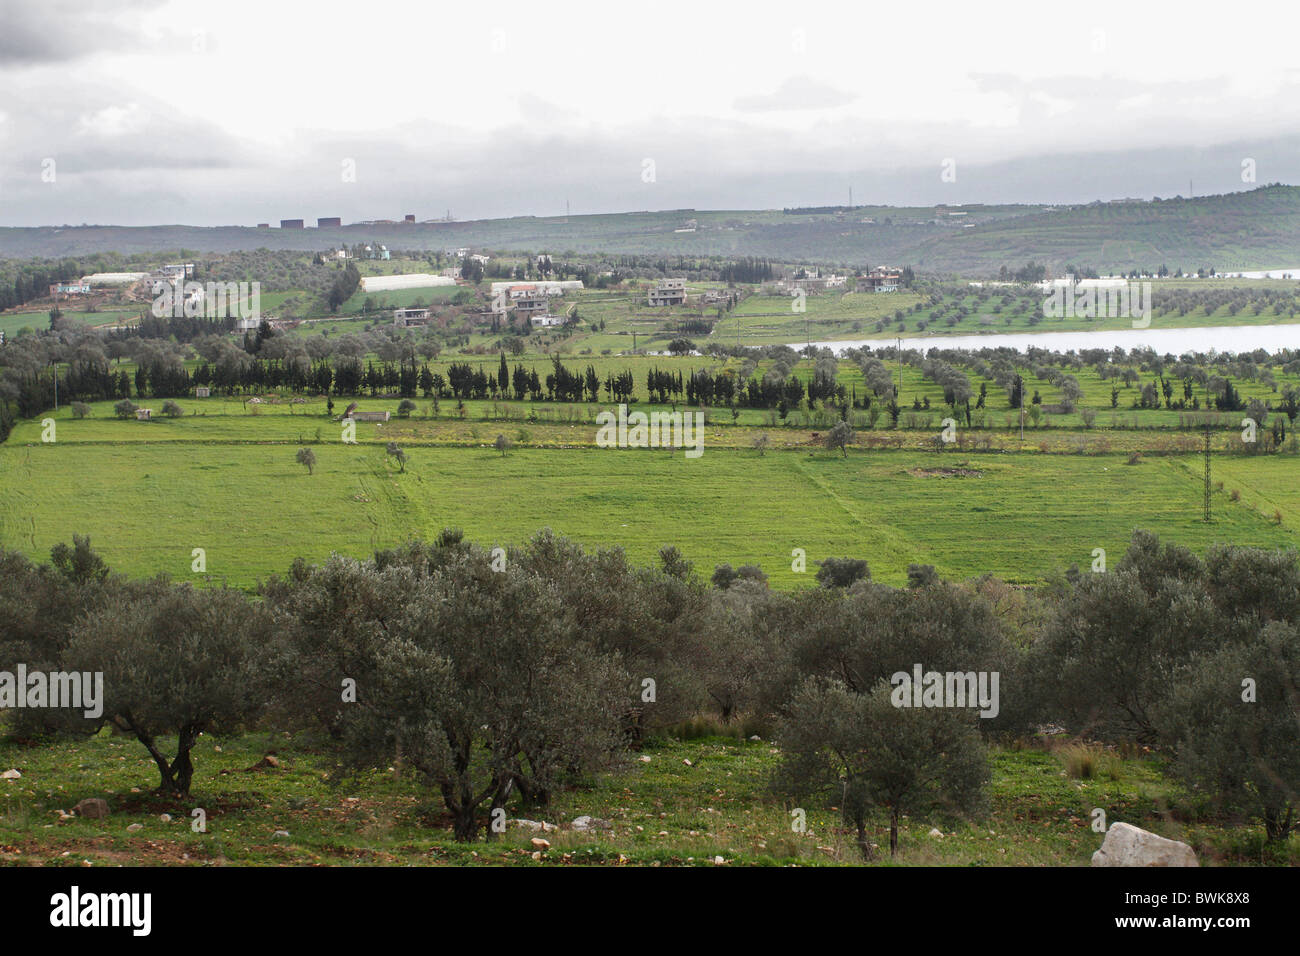 Fertile land and Olive trees near Homs in Syria. - Stock Image